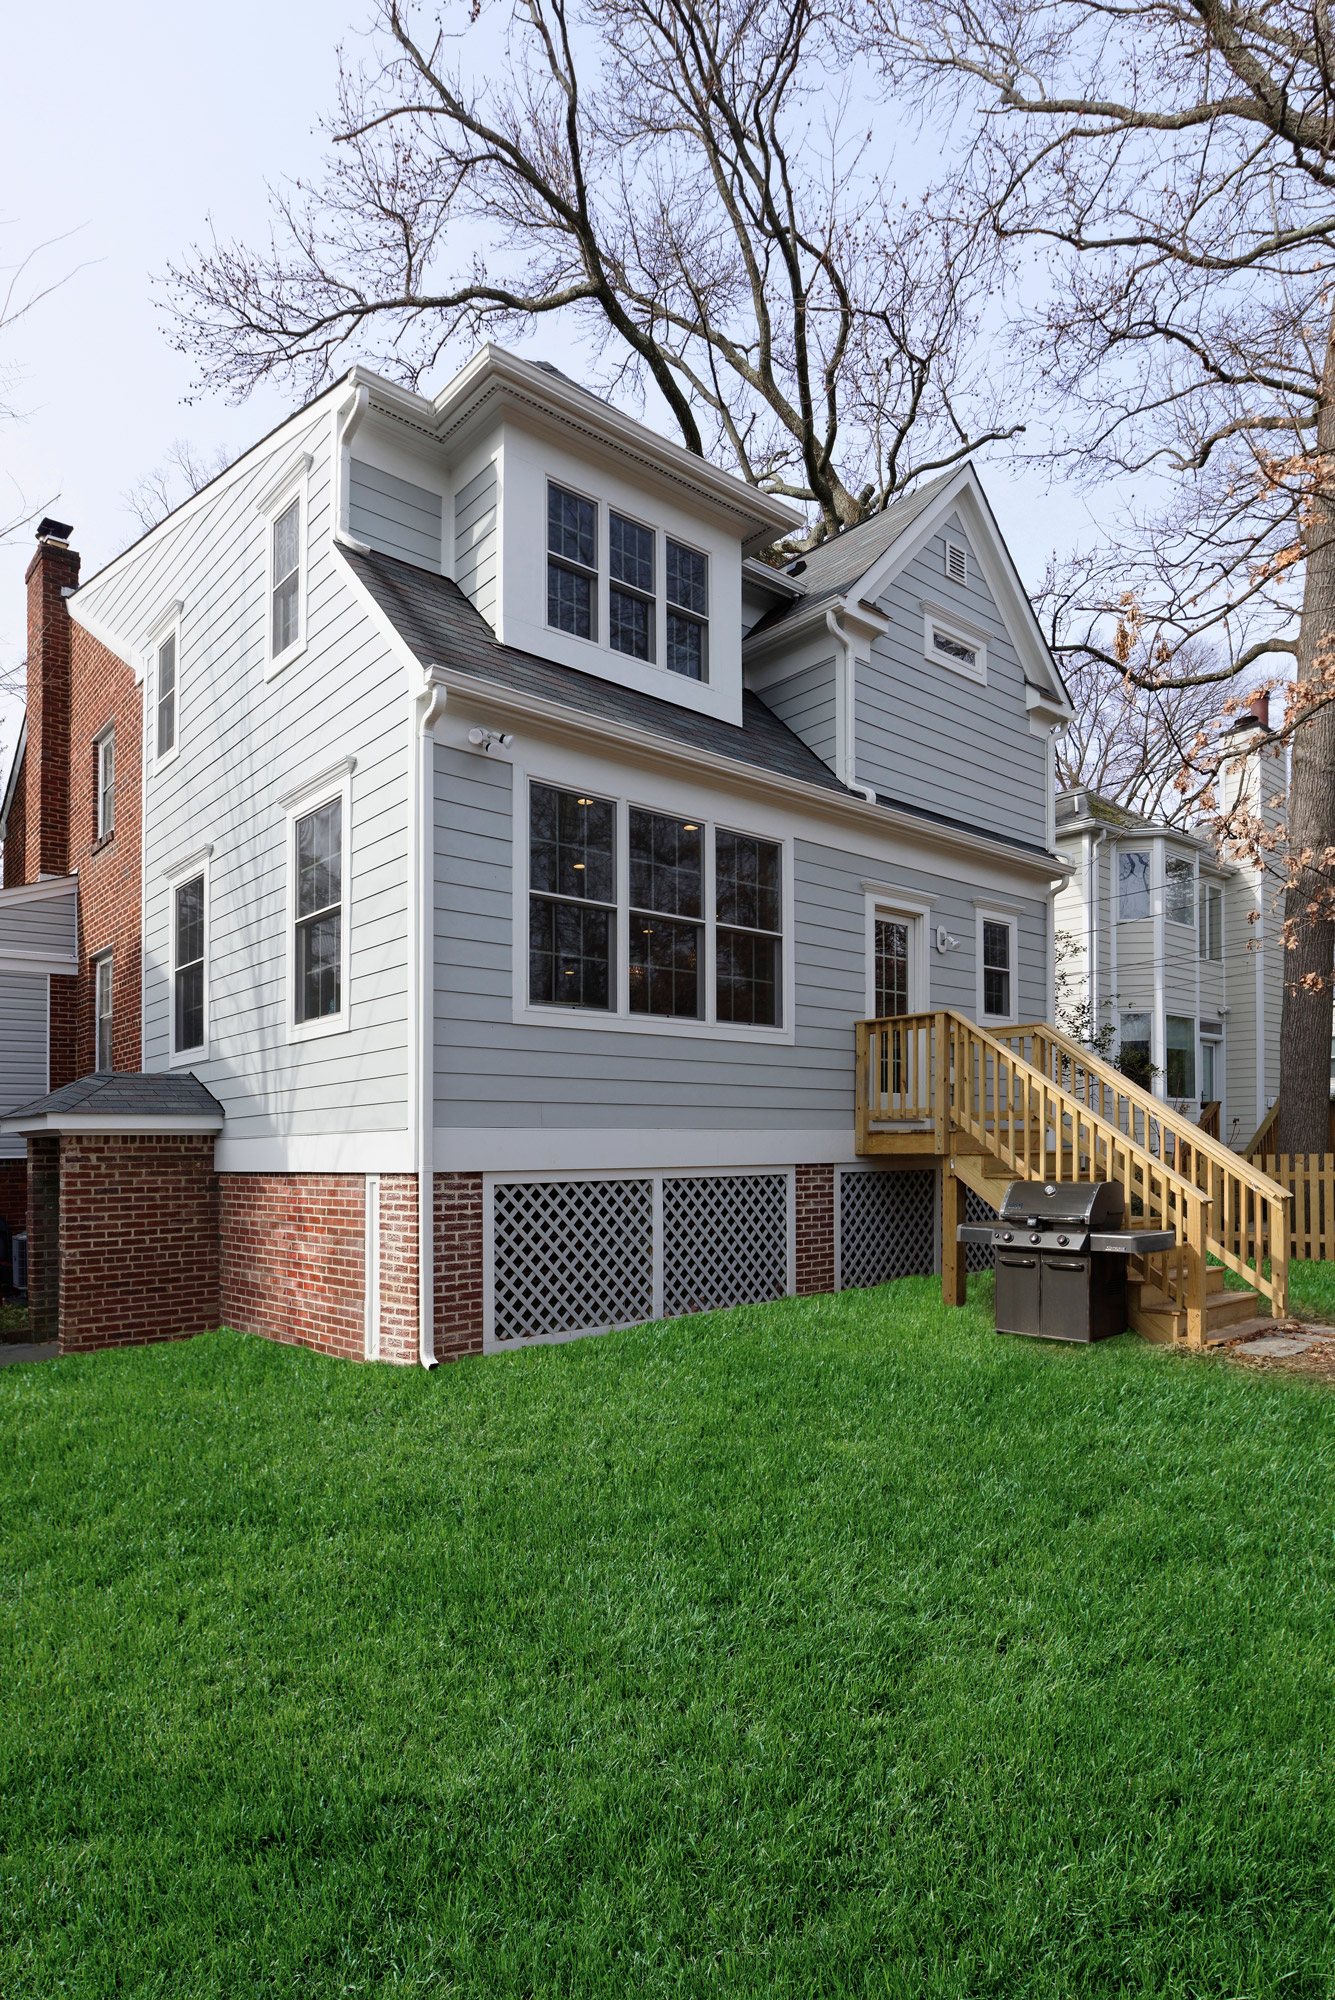 Two Story Rear Addition Arlington Va: Beautiful Home Addition In Alexandria By Metro Building & Remodeling Grp